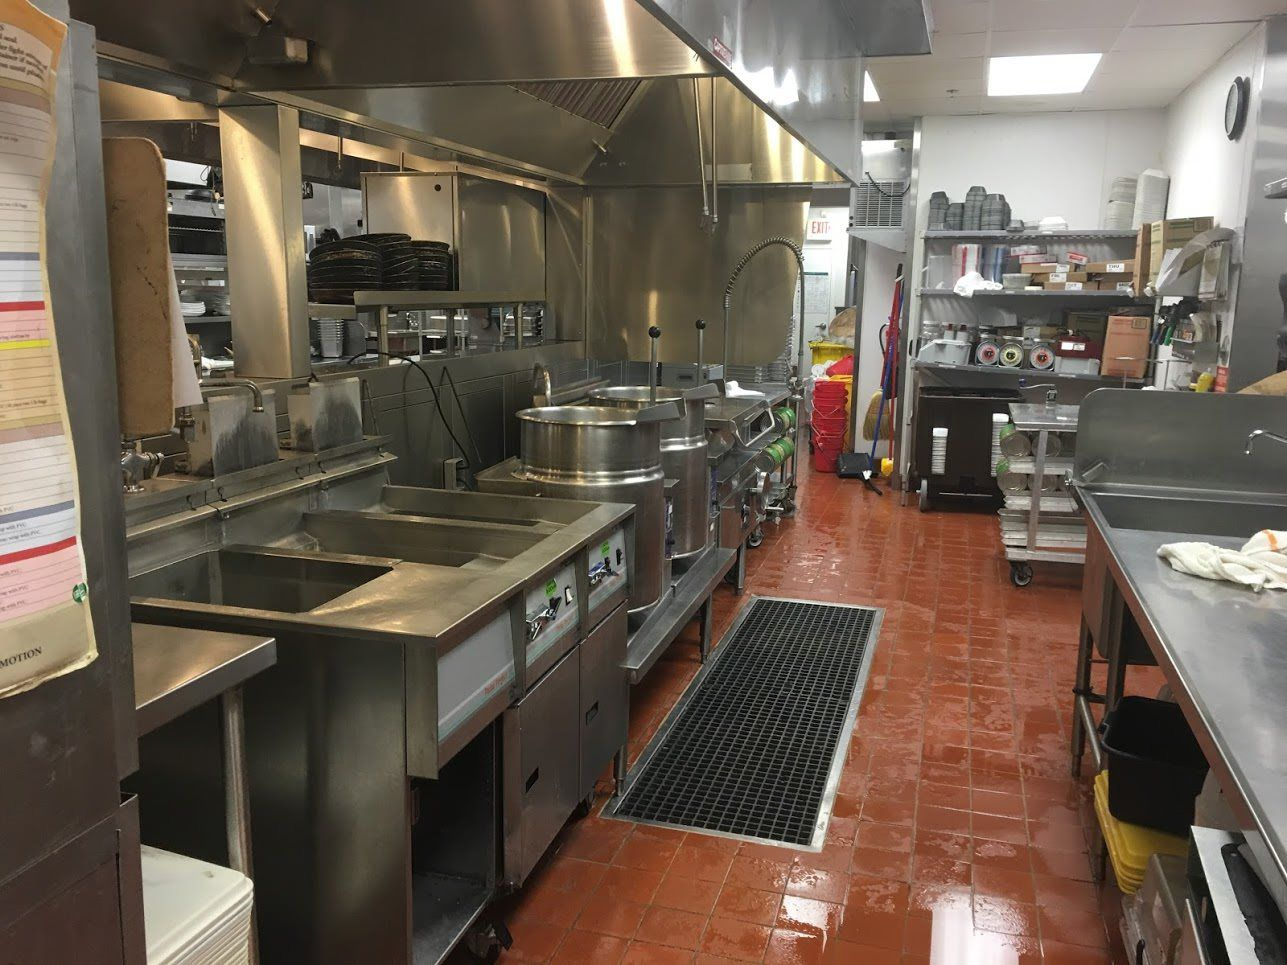 Kitchen Deep Cleaning Services - Leading Edge Services Inc